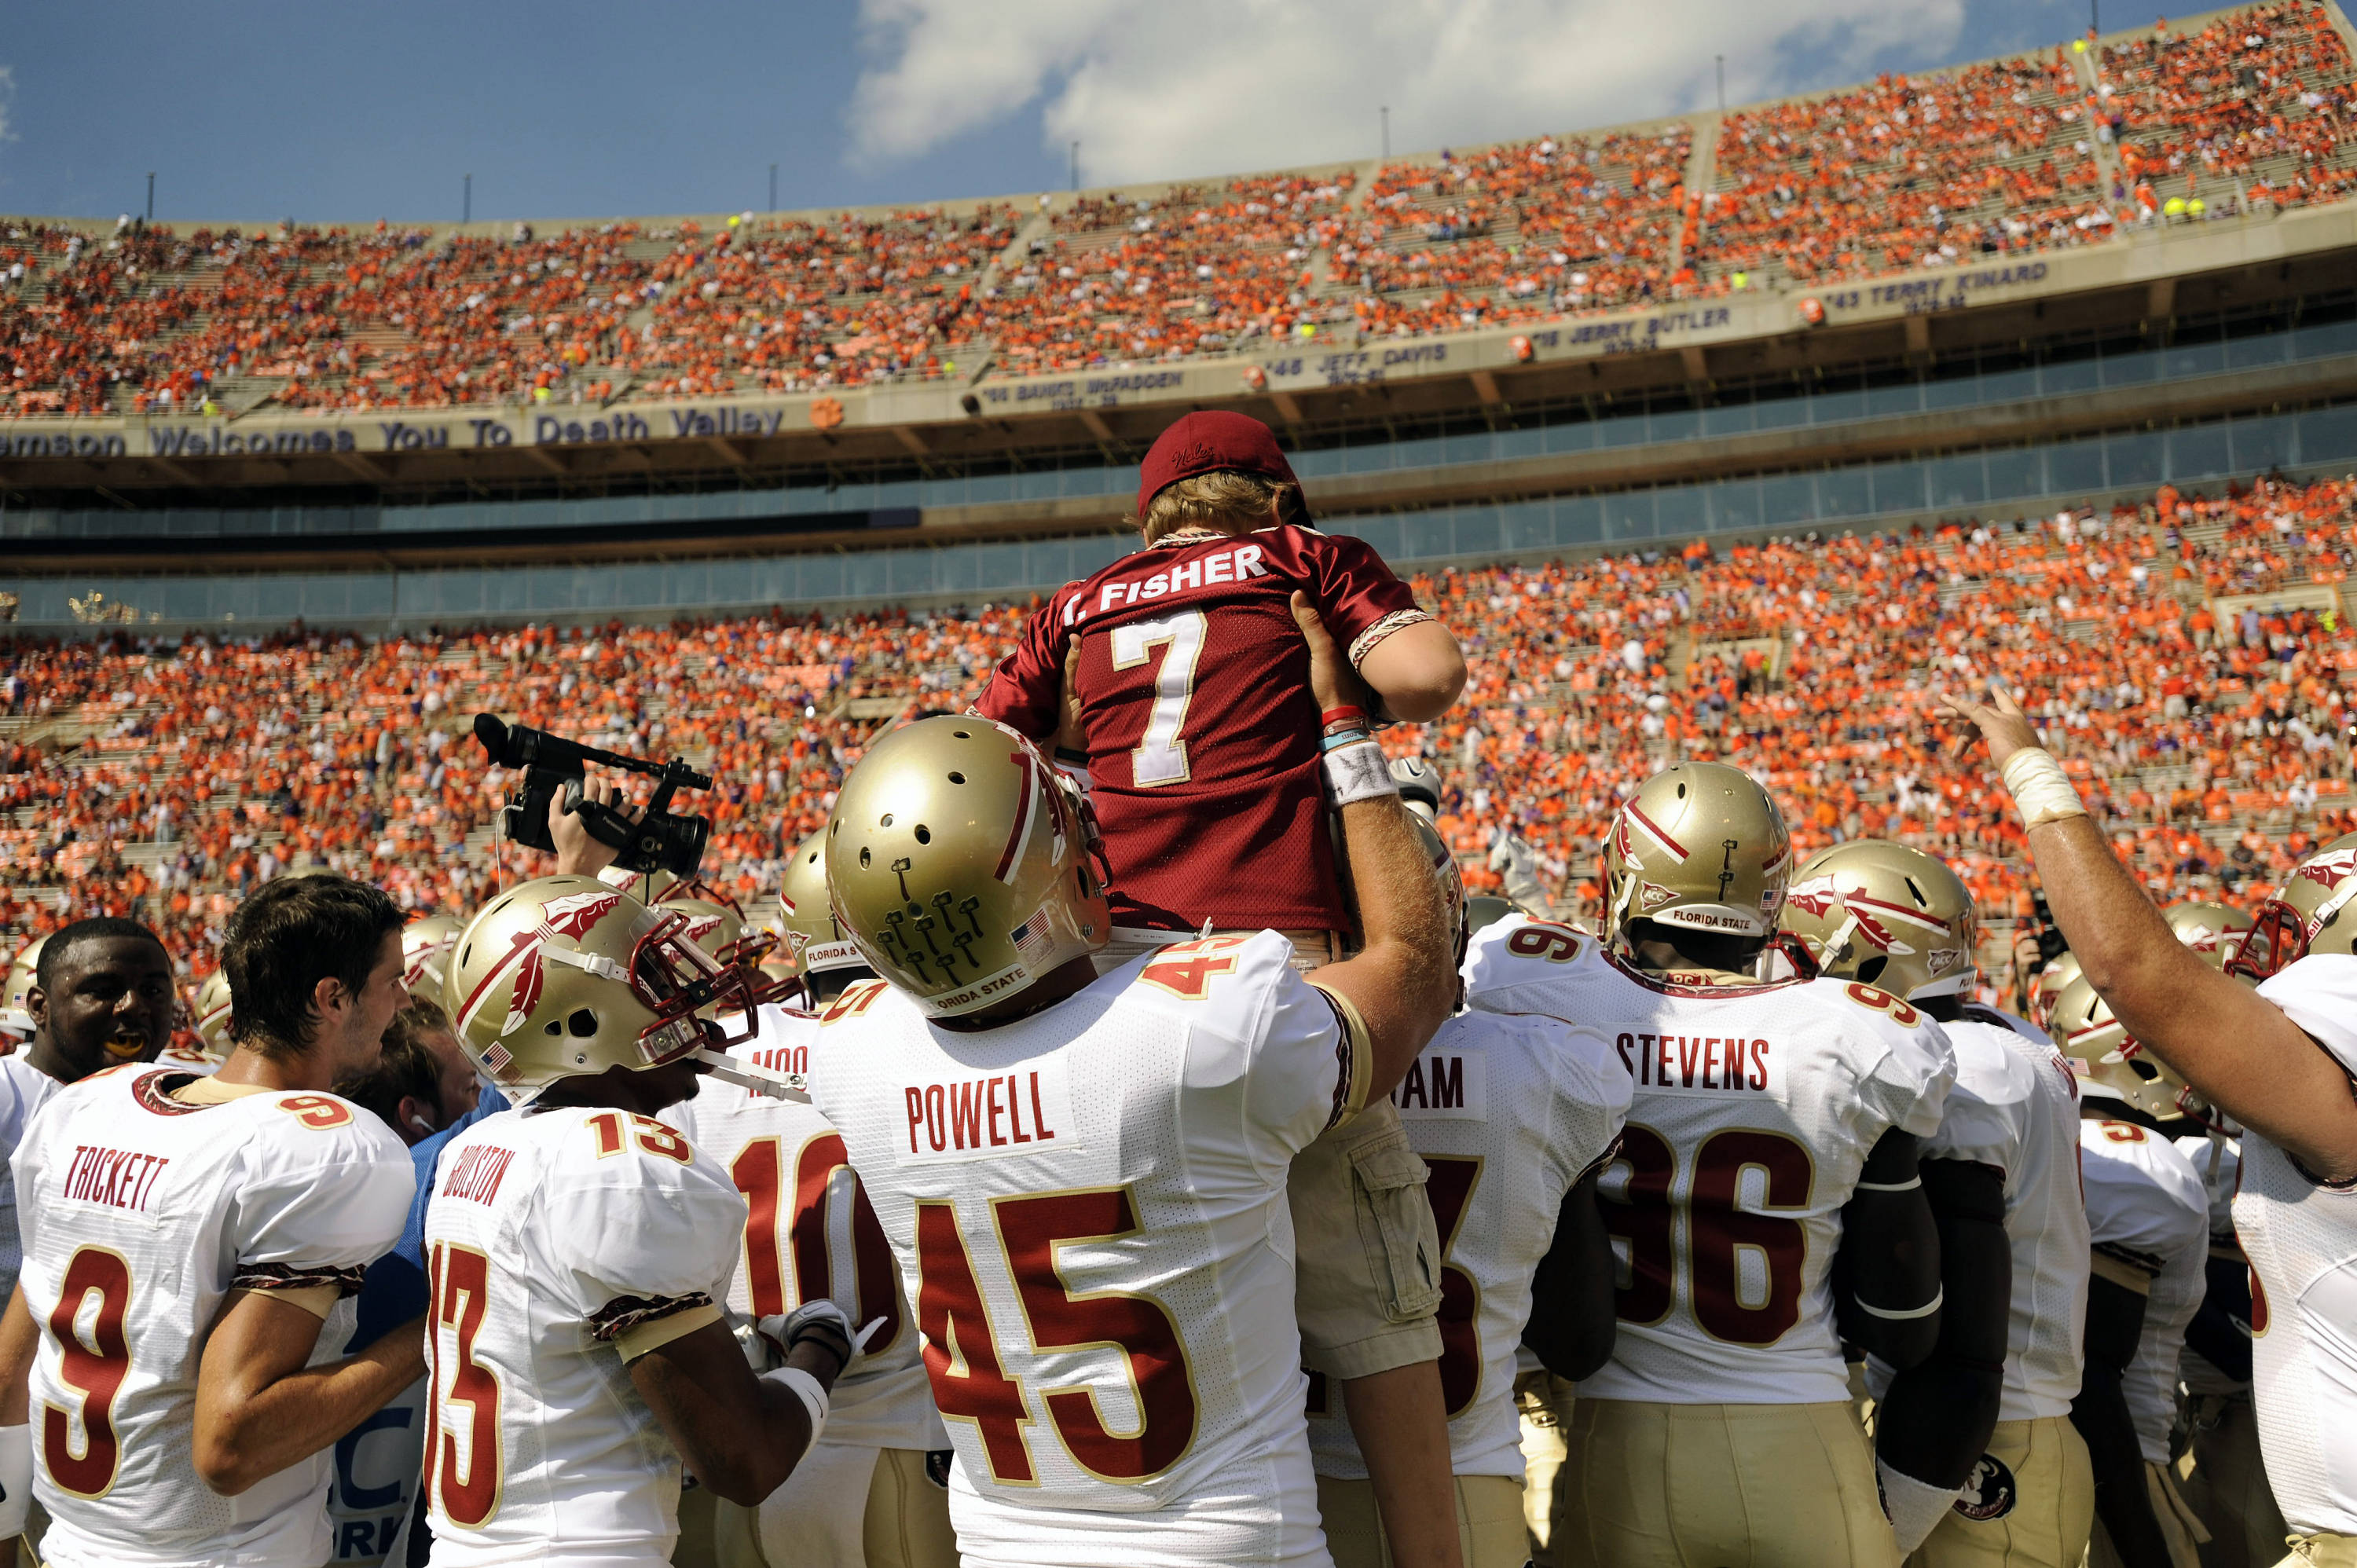 Shawn Powell holds up Trey Fisher during a team huddle.